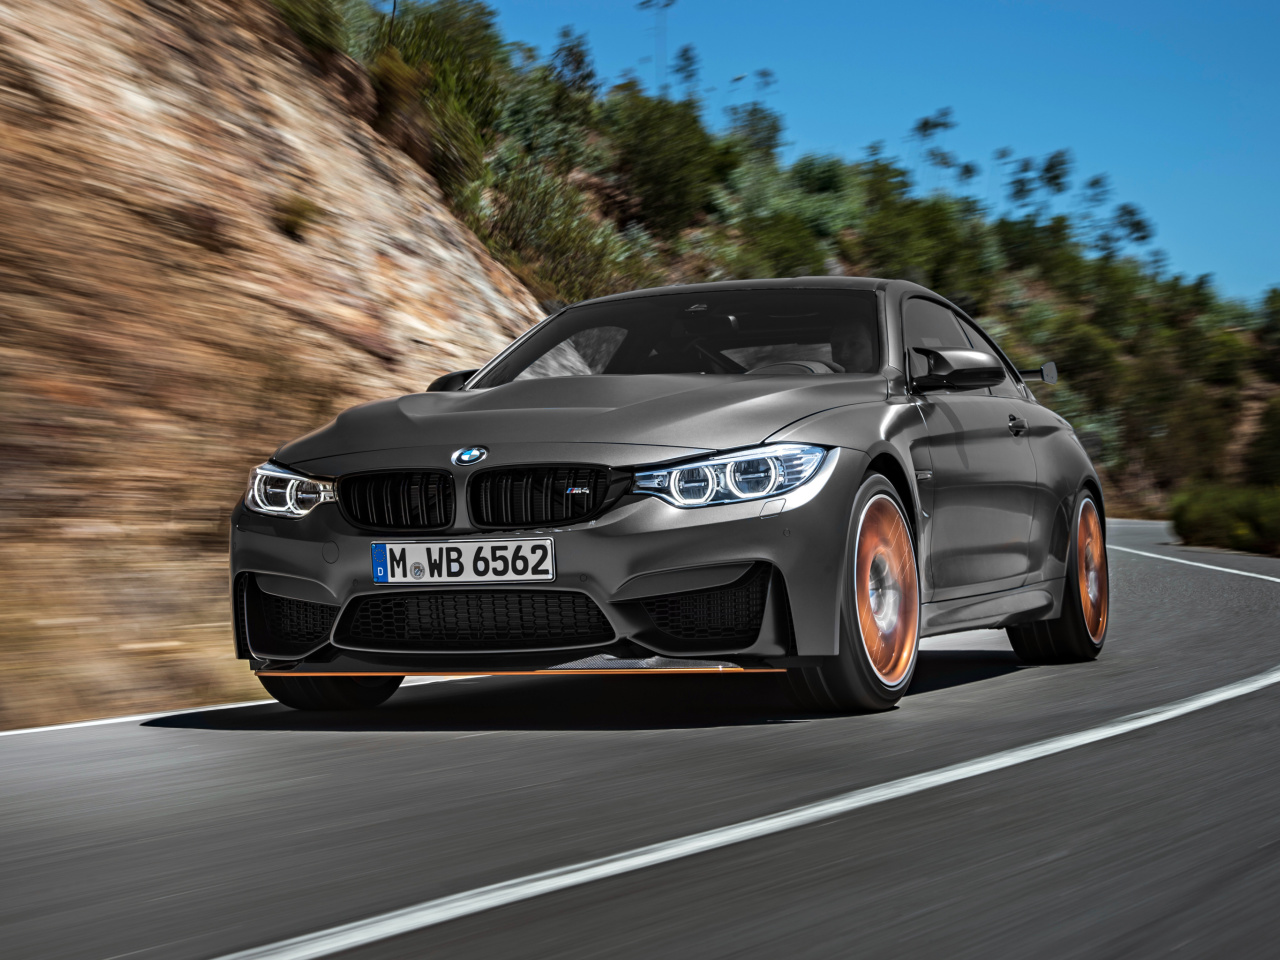 BMW M4 GTS F82 wallpaper 1280x960